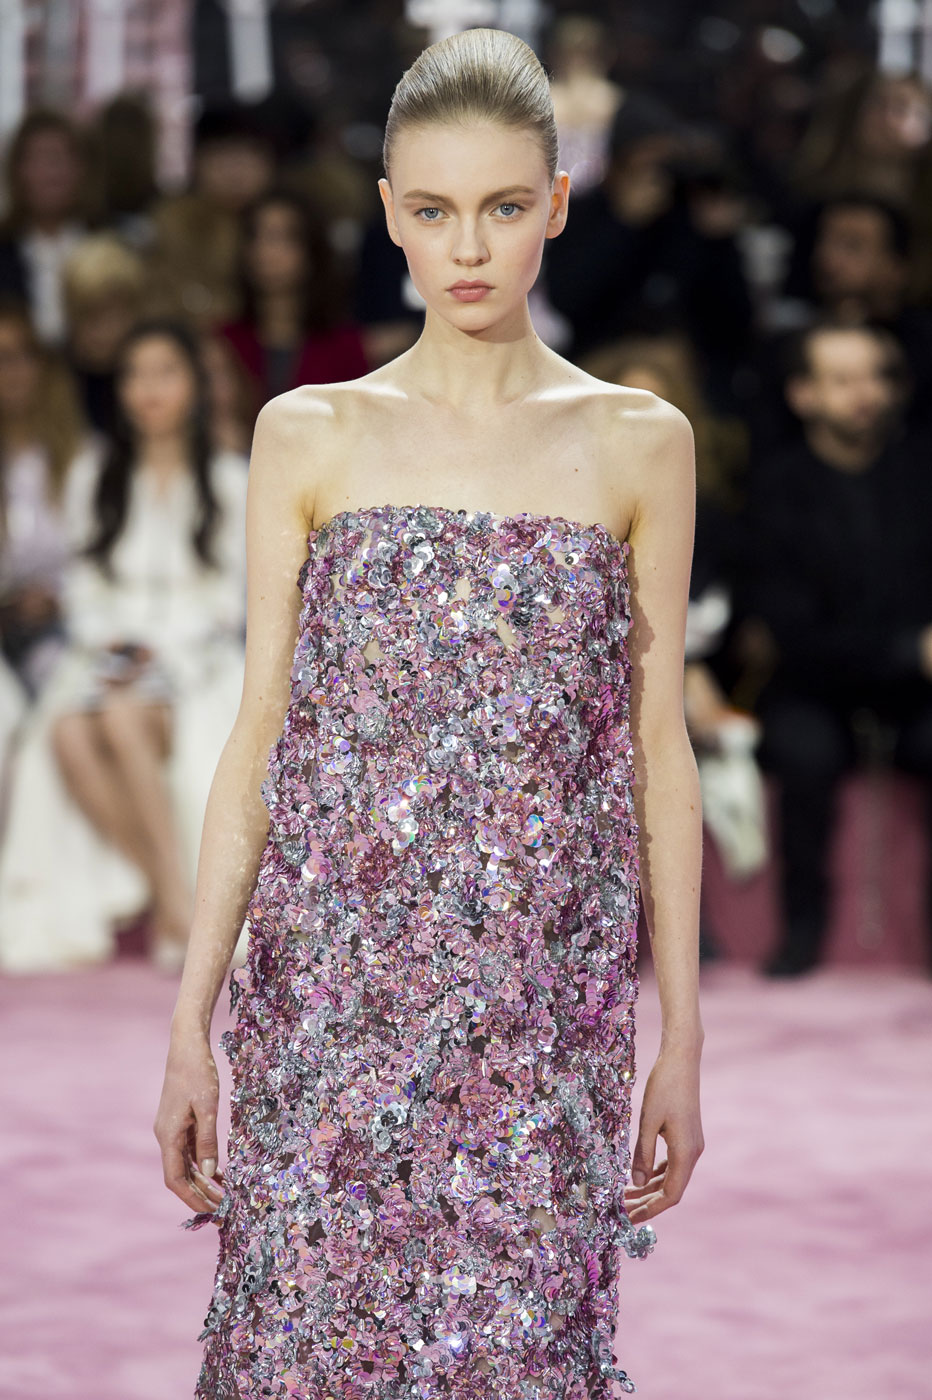 Christian-Dior-fashion-runway-show-haute-couture-paris-spring-summer-2015-the-impression-083